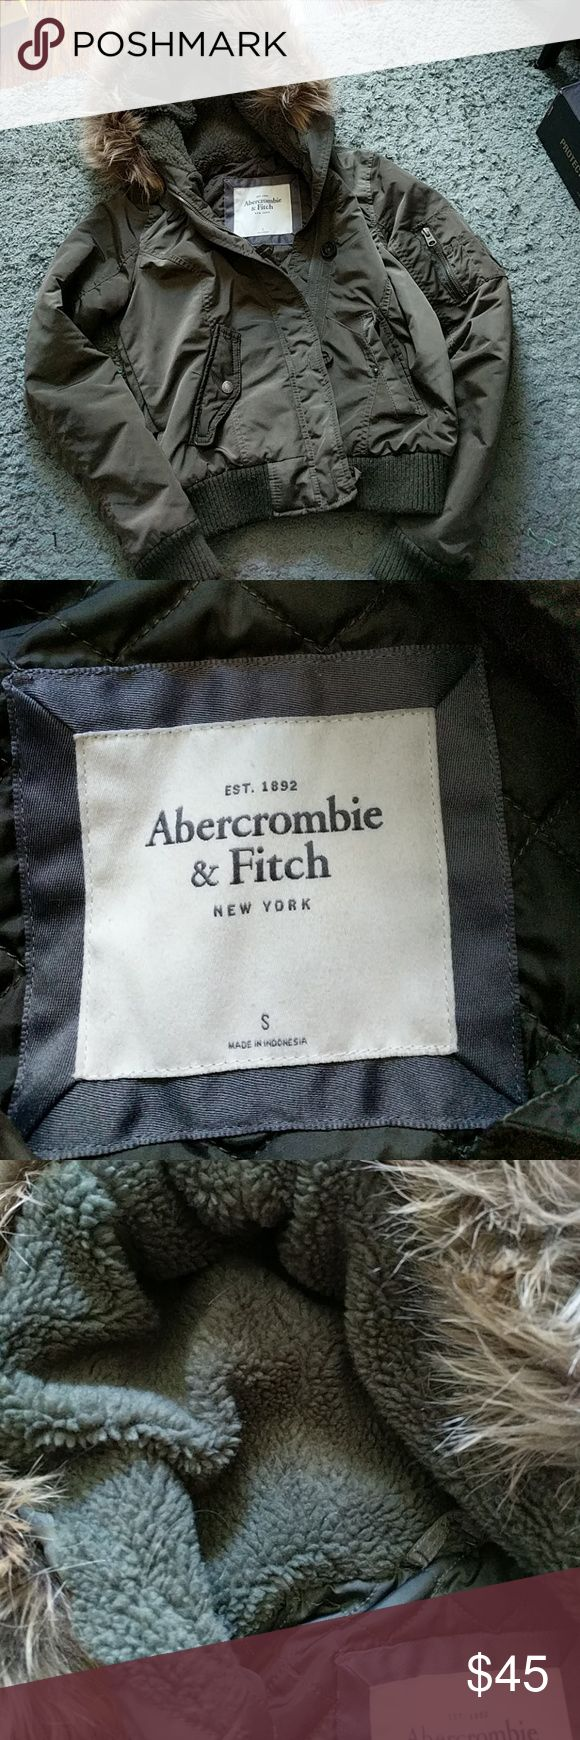 Abercrombie and Fitch Jacket Size small bomber style jacket.  Olive in color with removable fur.  Zips and buttons.  Minor piling but no stains.  Questions please feel free to contact me. Abercrombie and Fitch Jackets & Coats